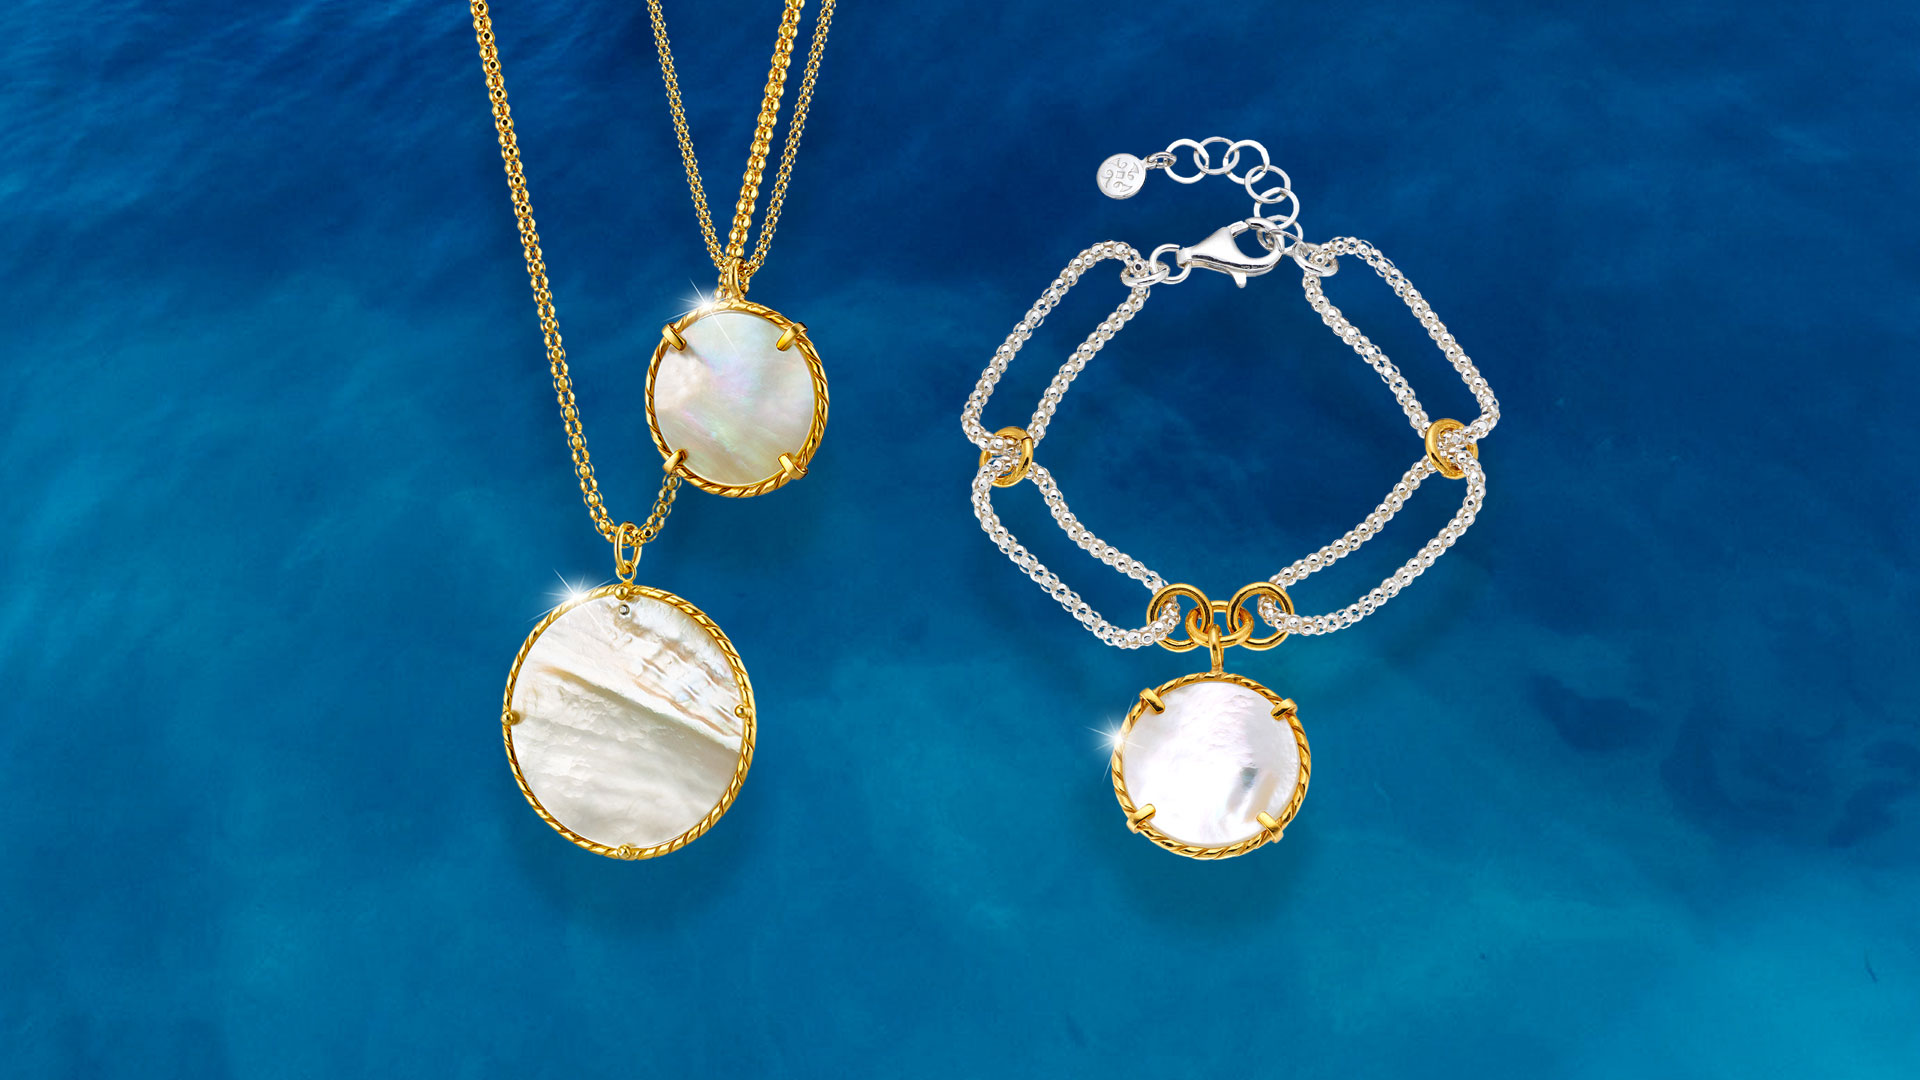 Striking gold collection - Oxette